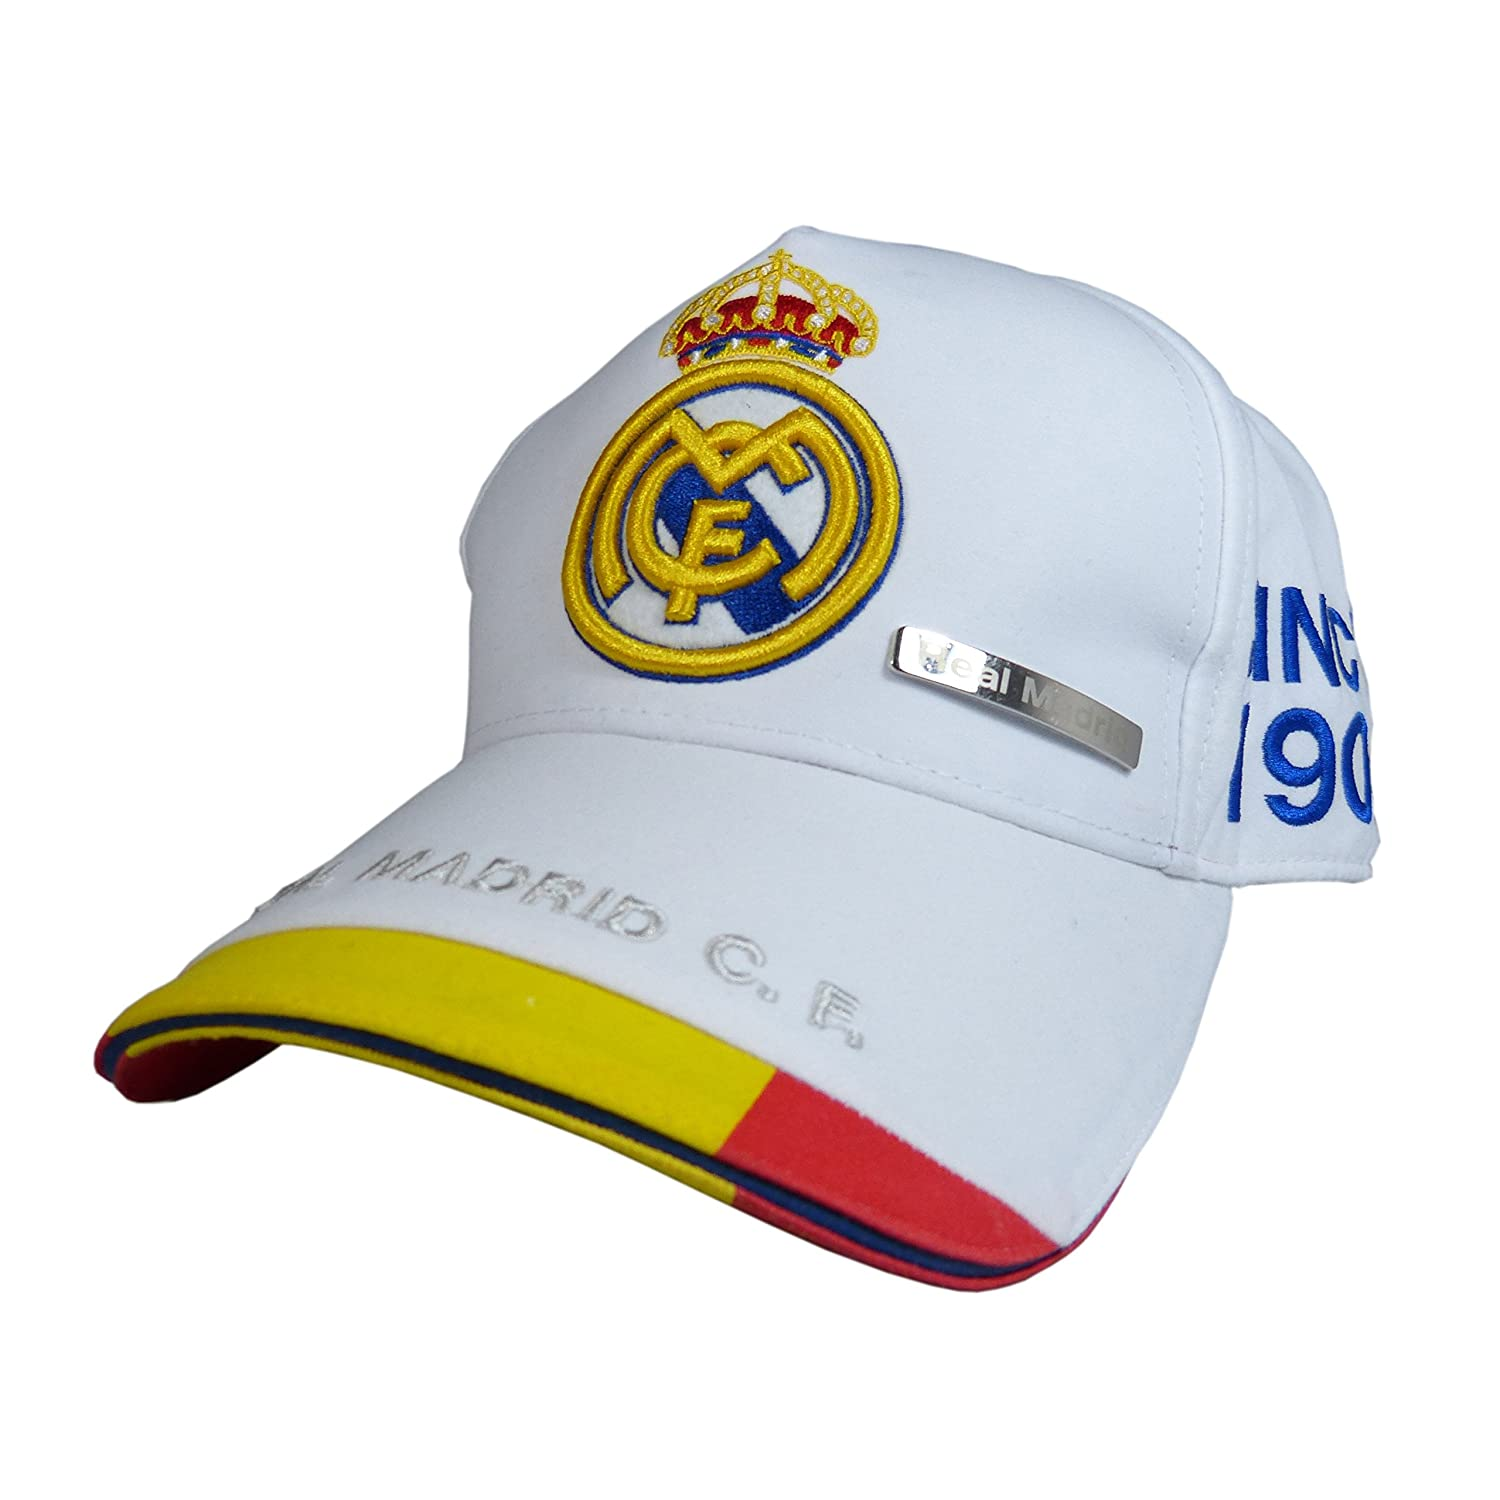 GORRA OFICIAL - REAL MADRID - BLANCO ESPAÑA ADULTO COTTON LIKE ...